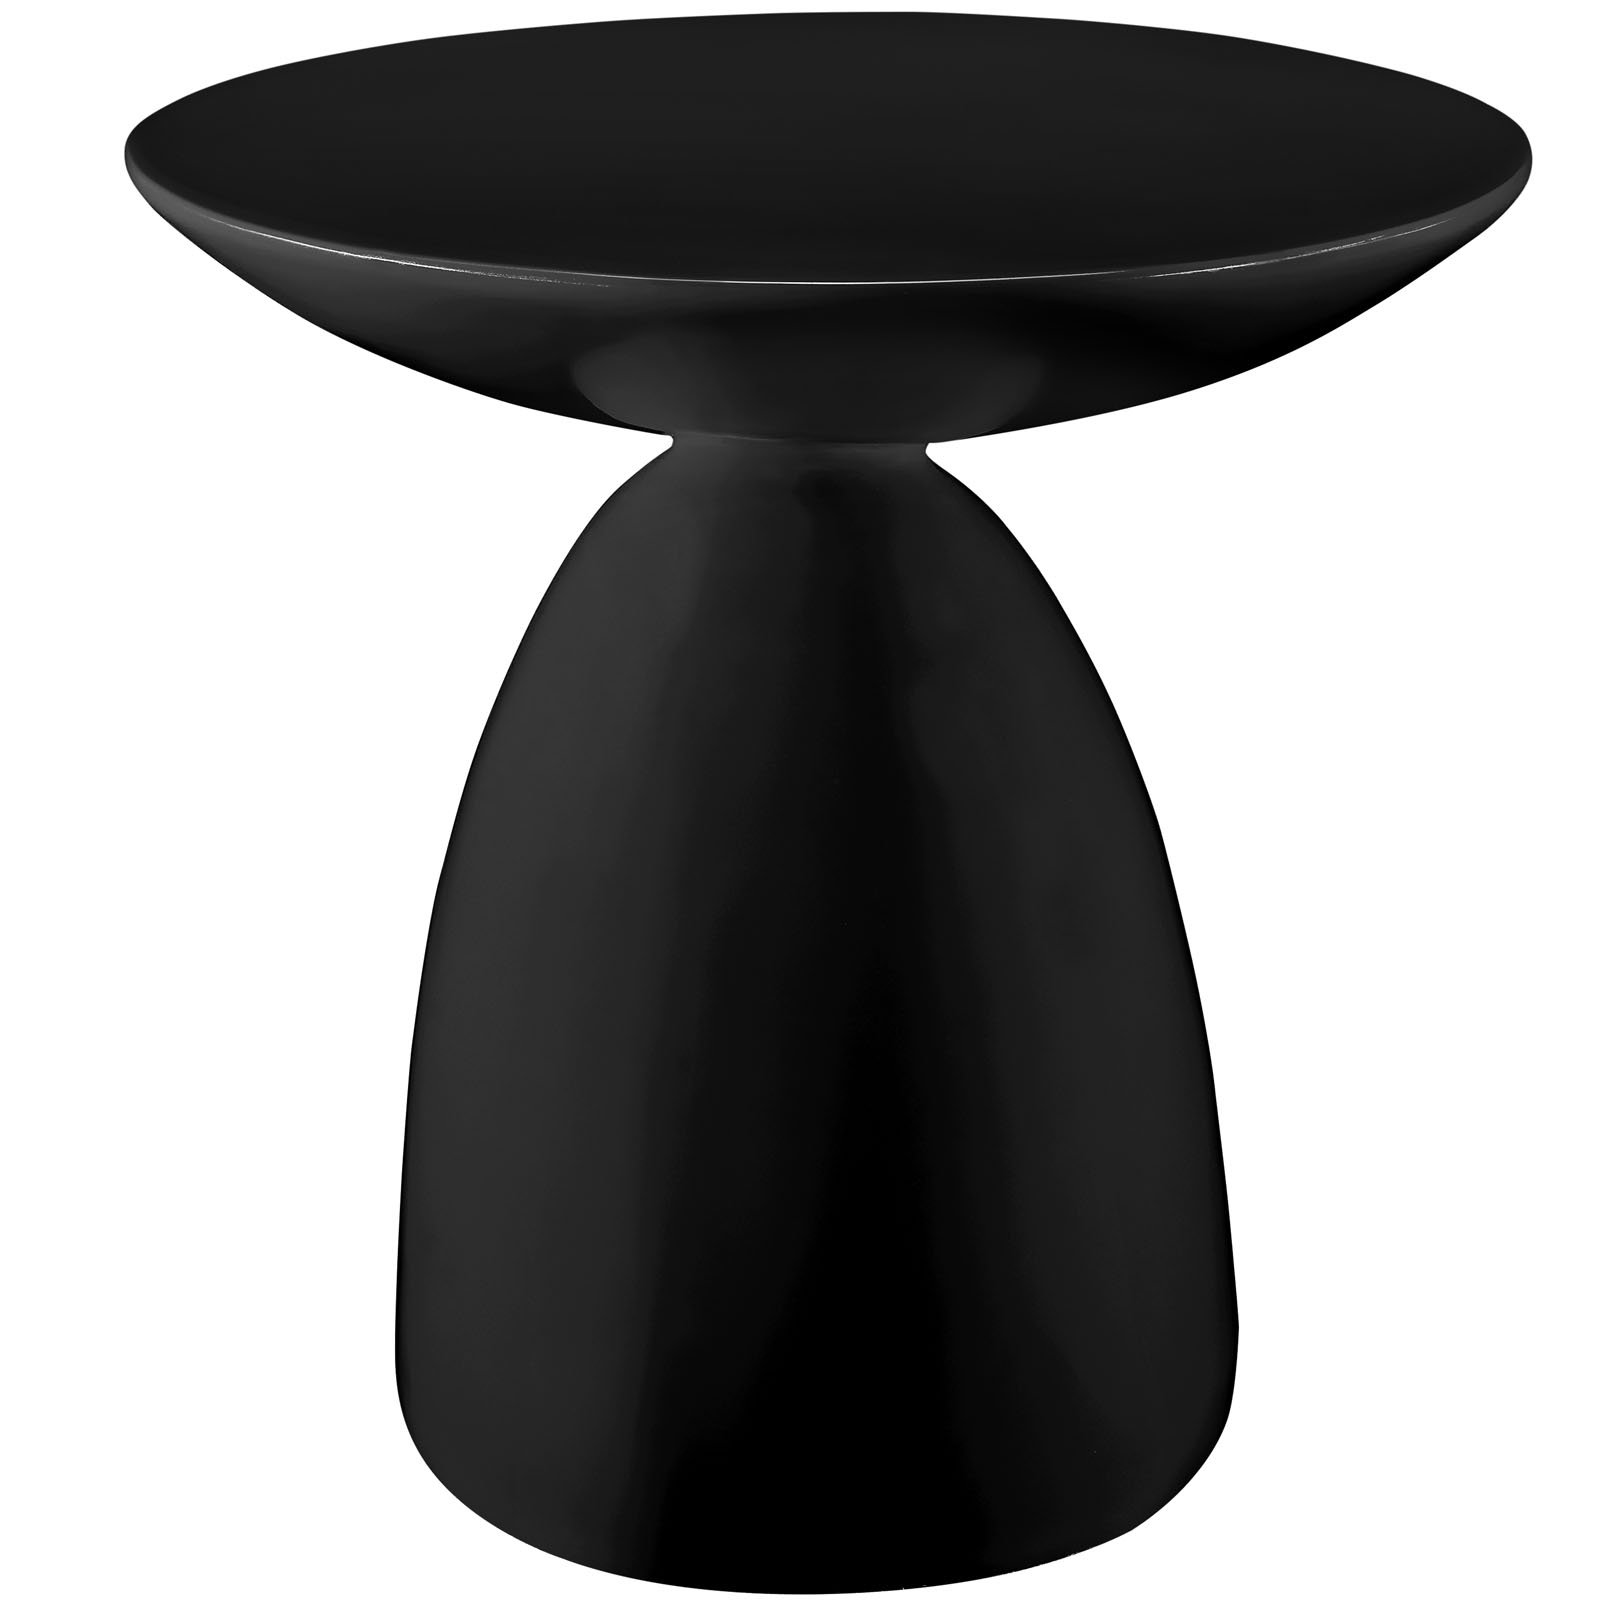 Hip Mod Hotel Sculptural Side Table in Black